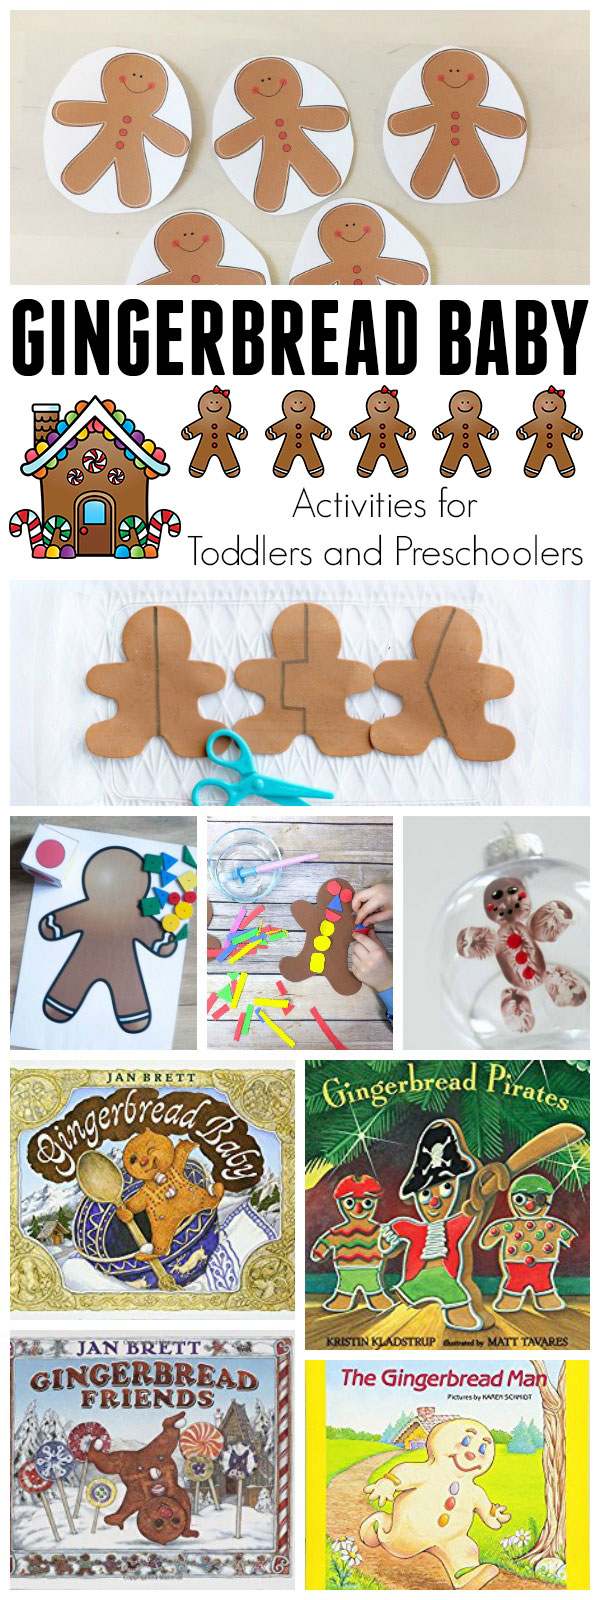 Gingerbread Baby Activities For Toddlers And Preschoolers